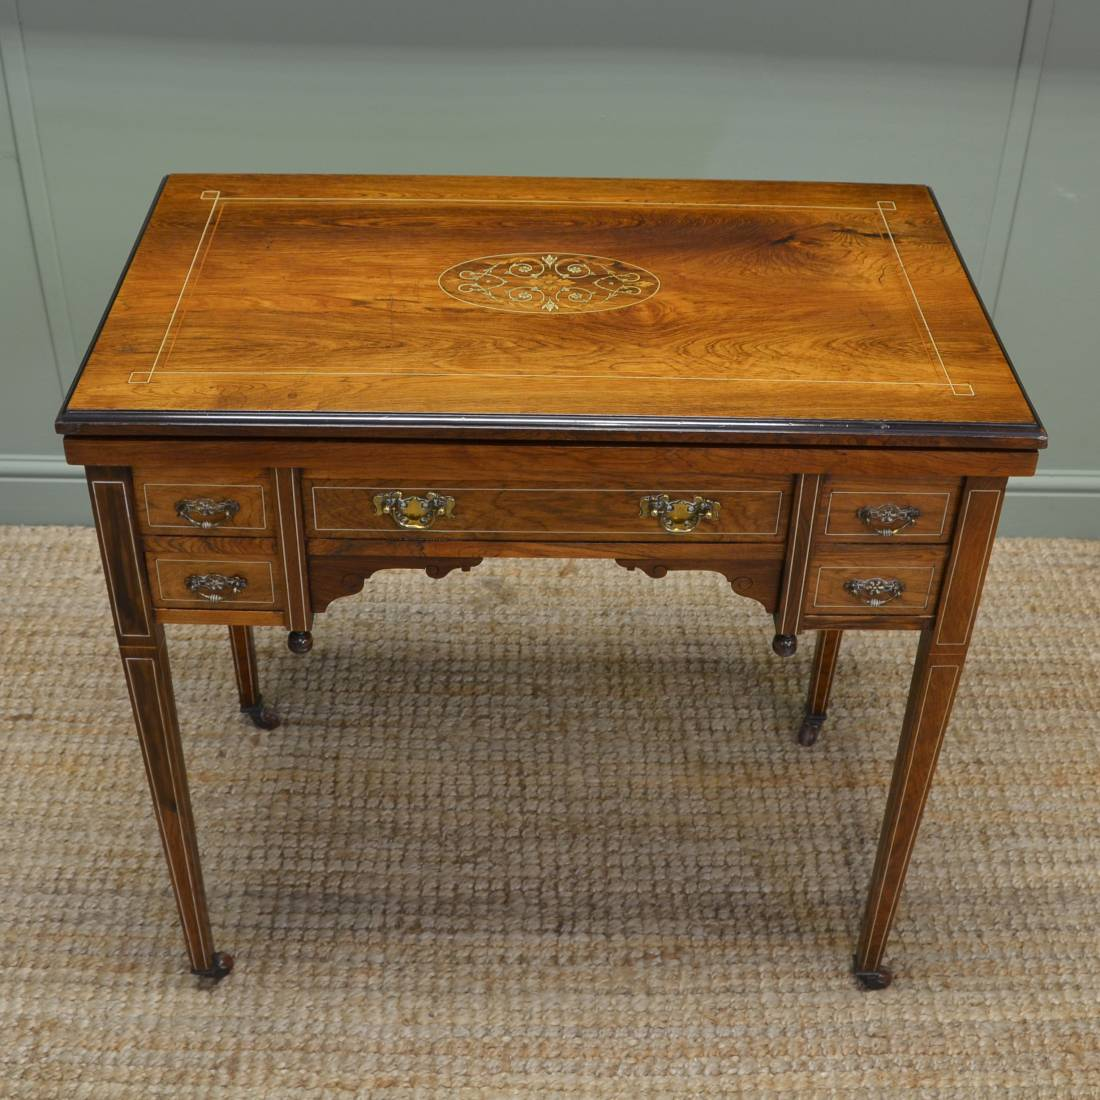 Unusual inlaid rosewood antique victorian writing desk